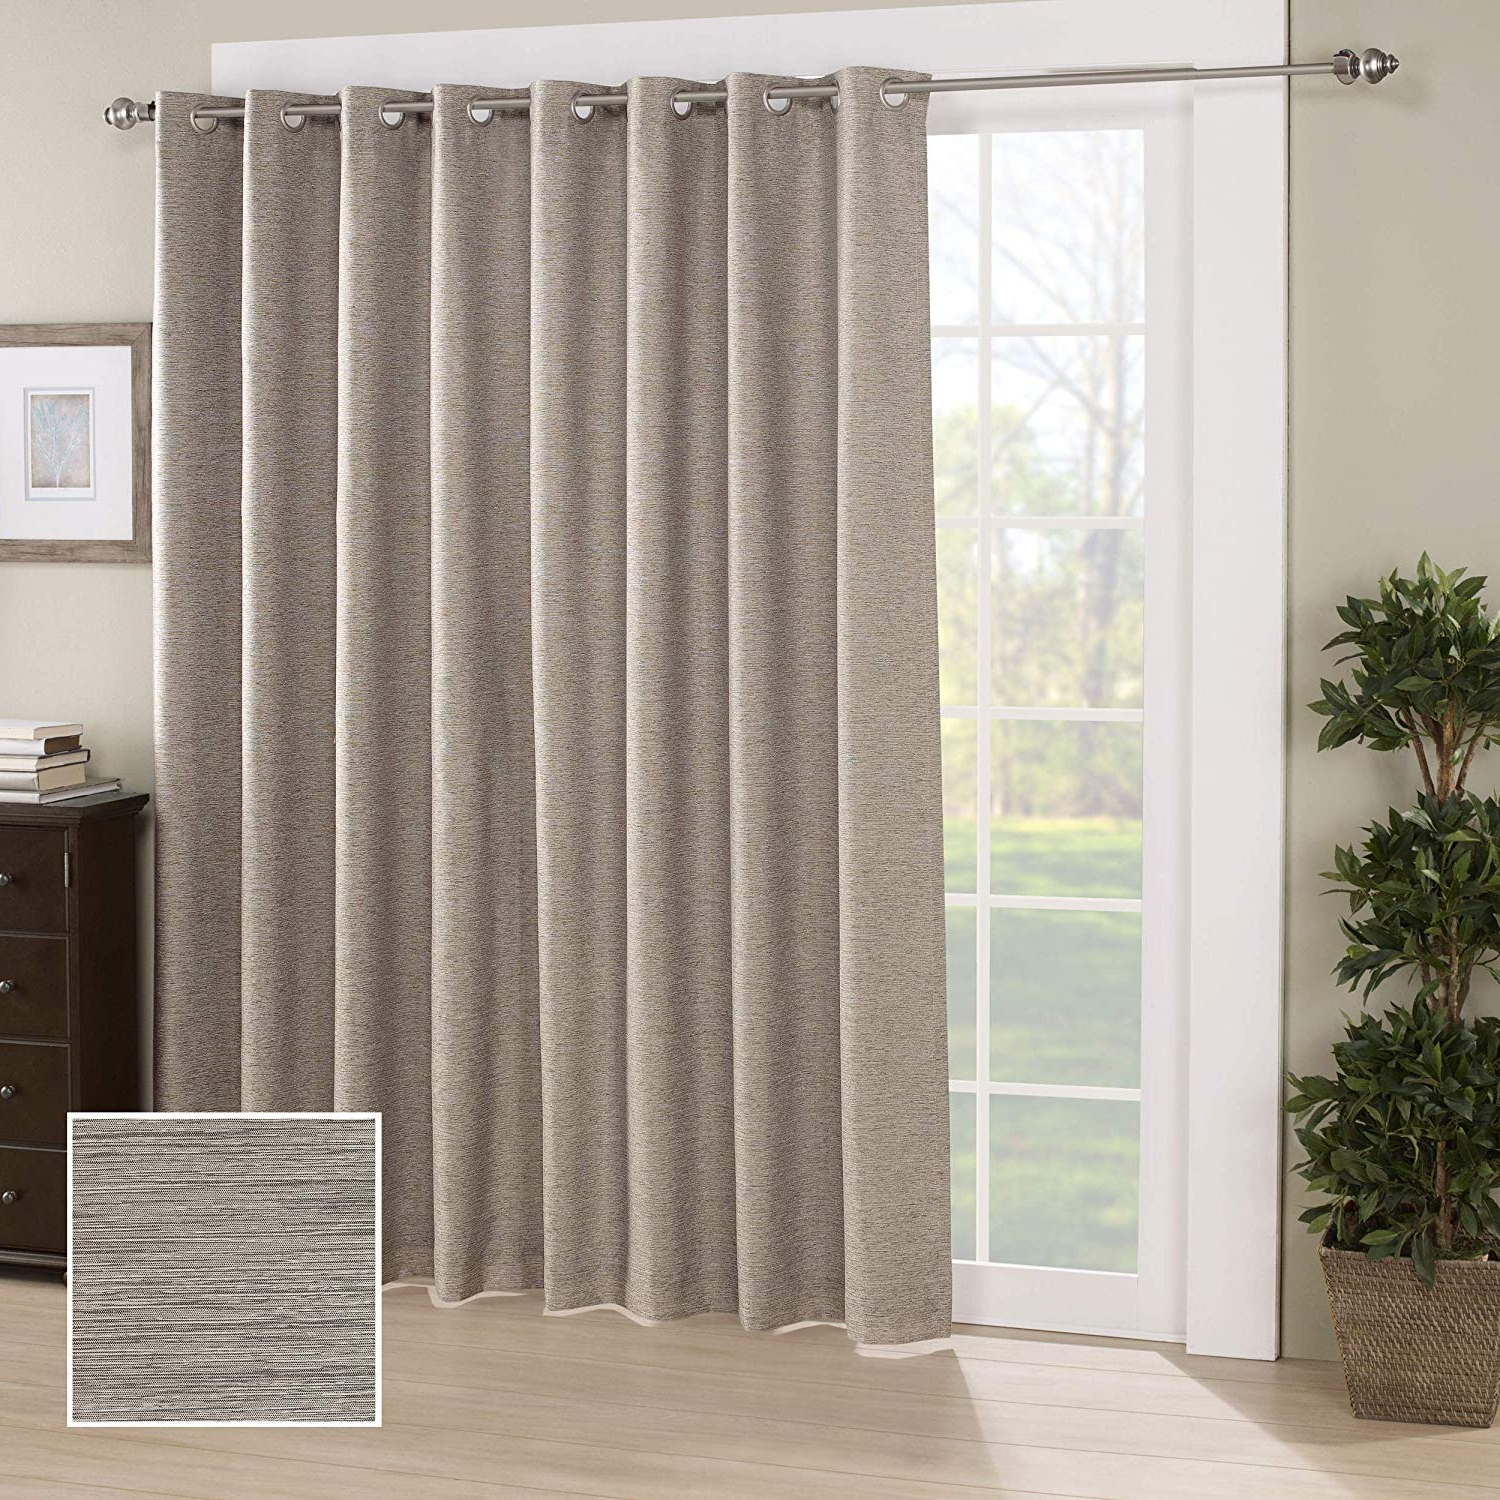 "Eclipse Newport Blackout Curtain Panels Inside Most Up To Date Eclipse Blackout Curtains For Bedroom – Newportinsulated Darkening Single  Panel Grommet Top Window Treatment Living Room, 84"" X 100"", Mushroom (Gallery 9 of 20)"